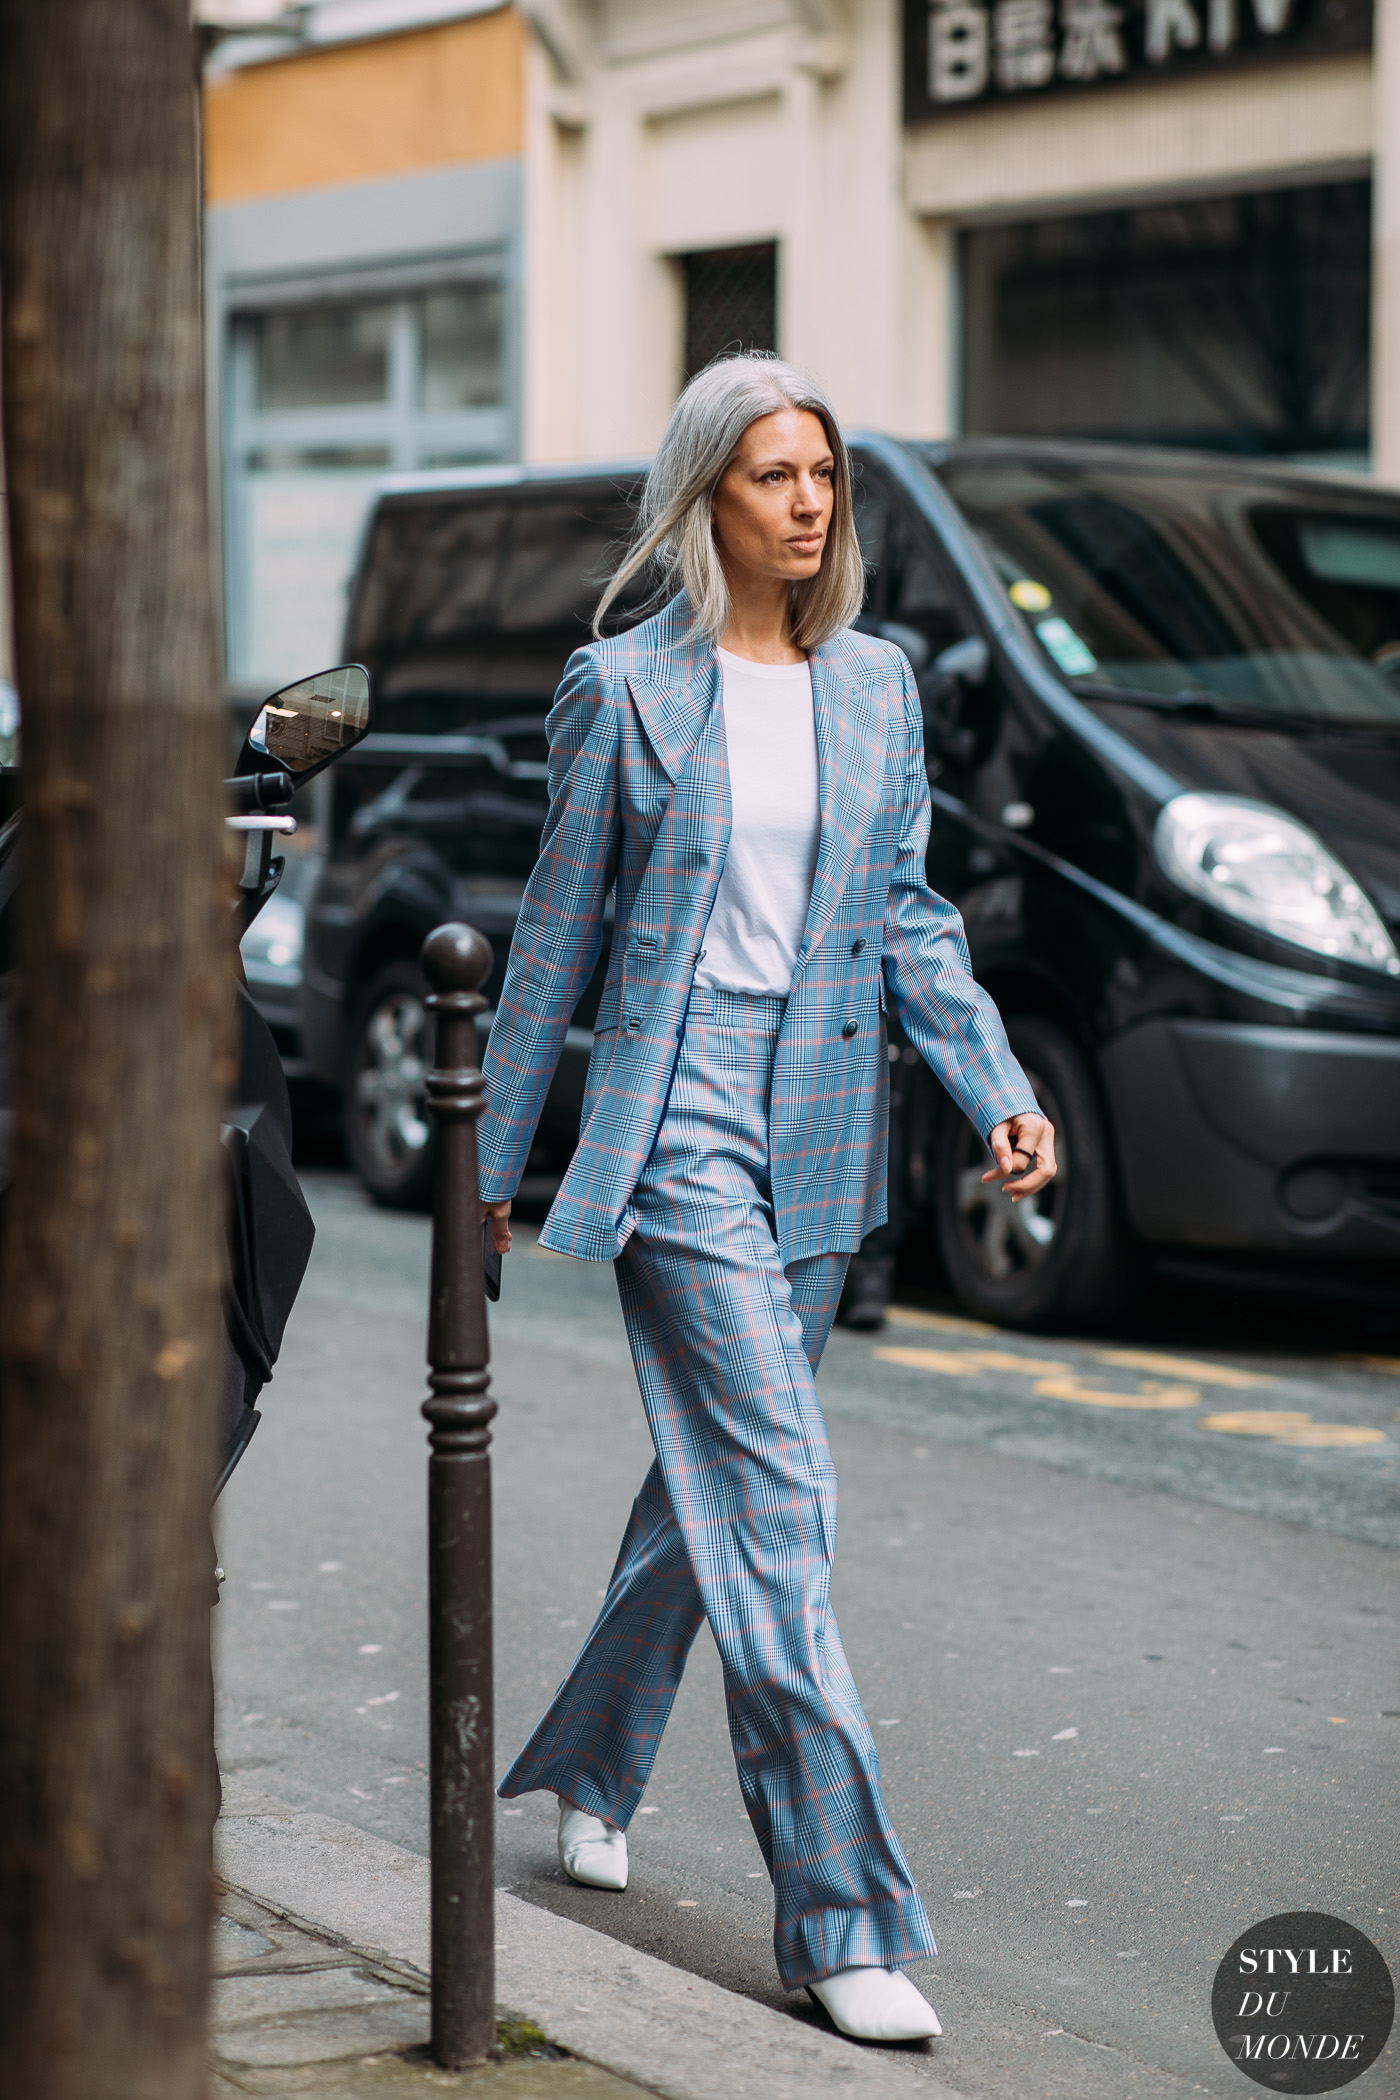 Sarah Harris by STYLEDUMONDE Street Style Fashion Photography FW18 20180305_48A6394